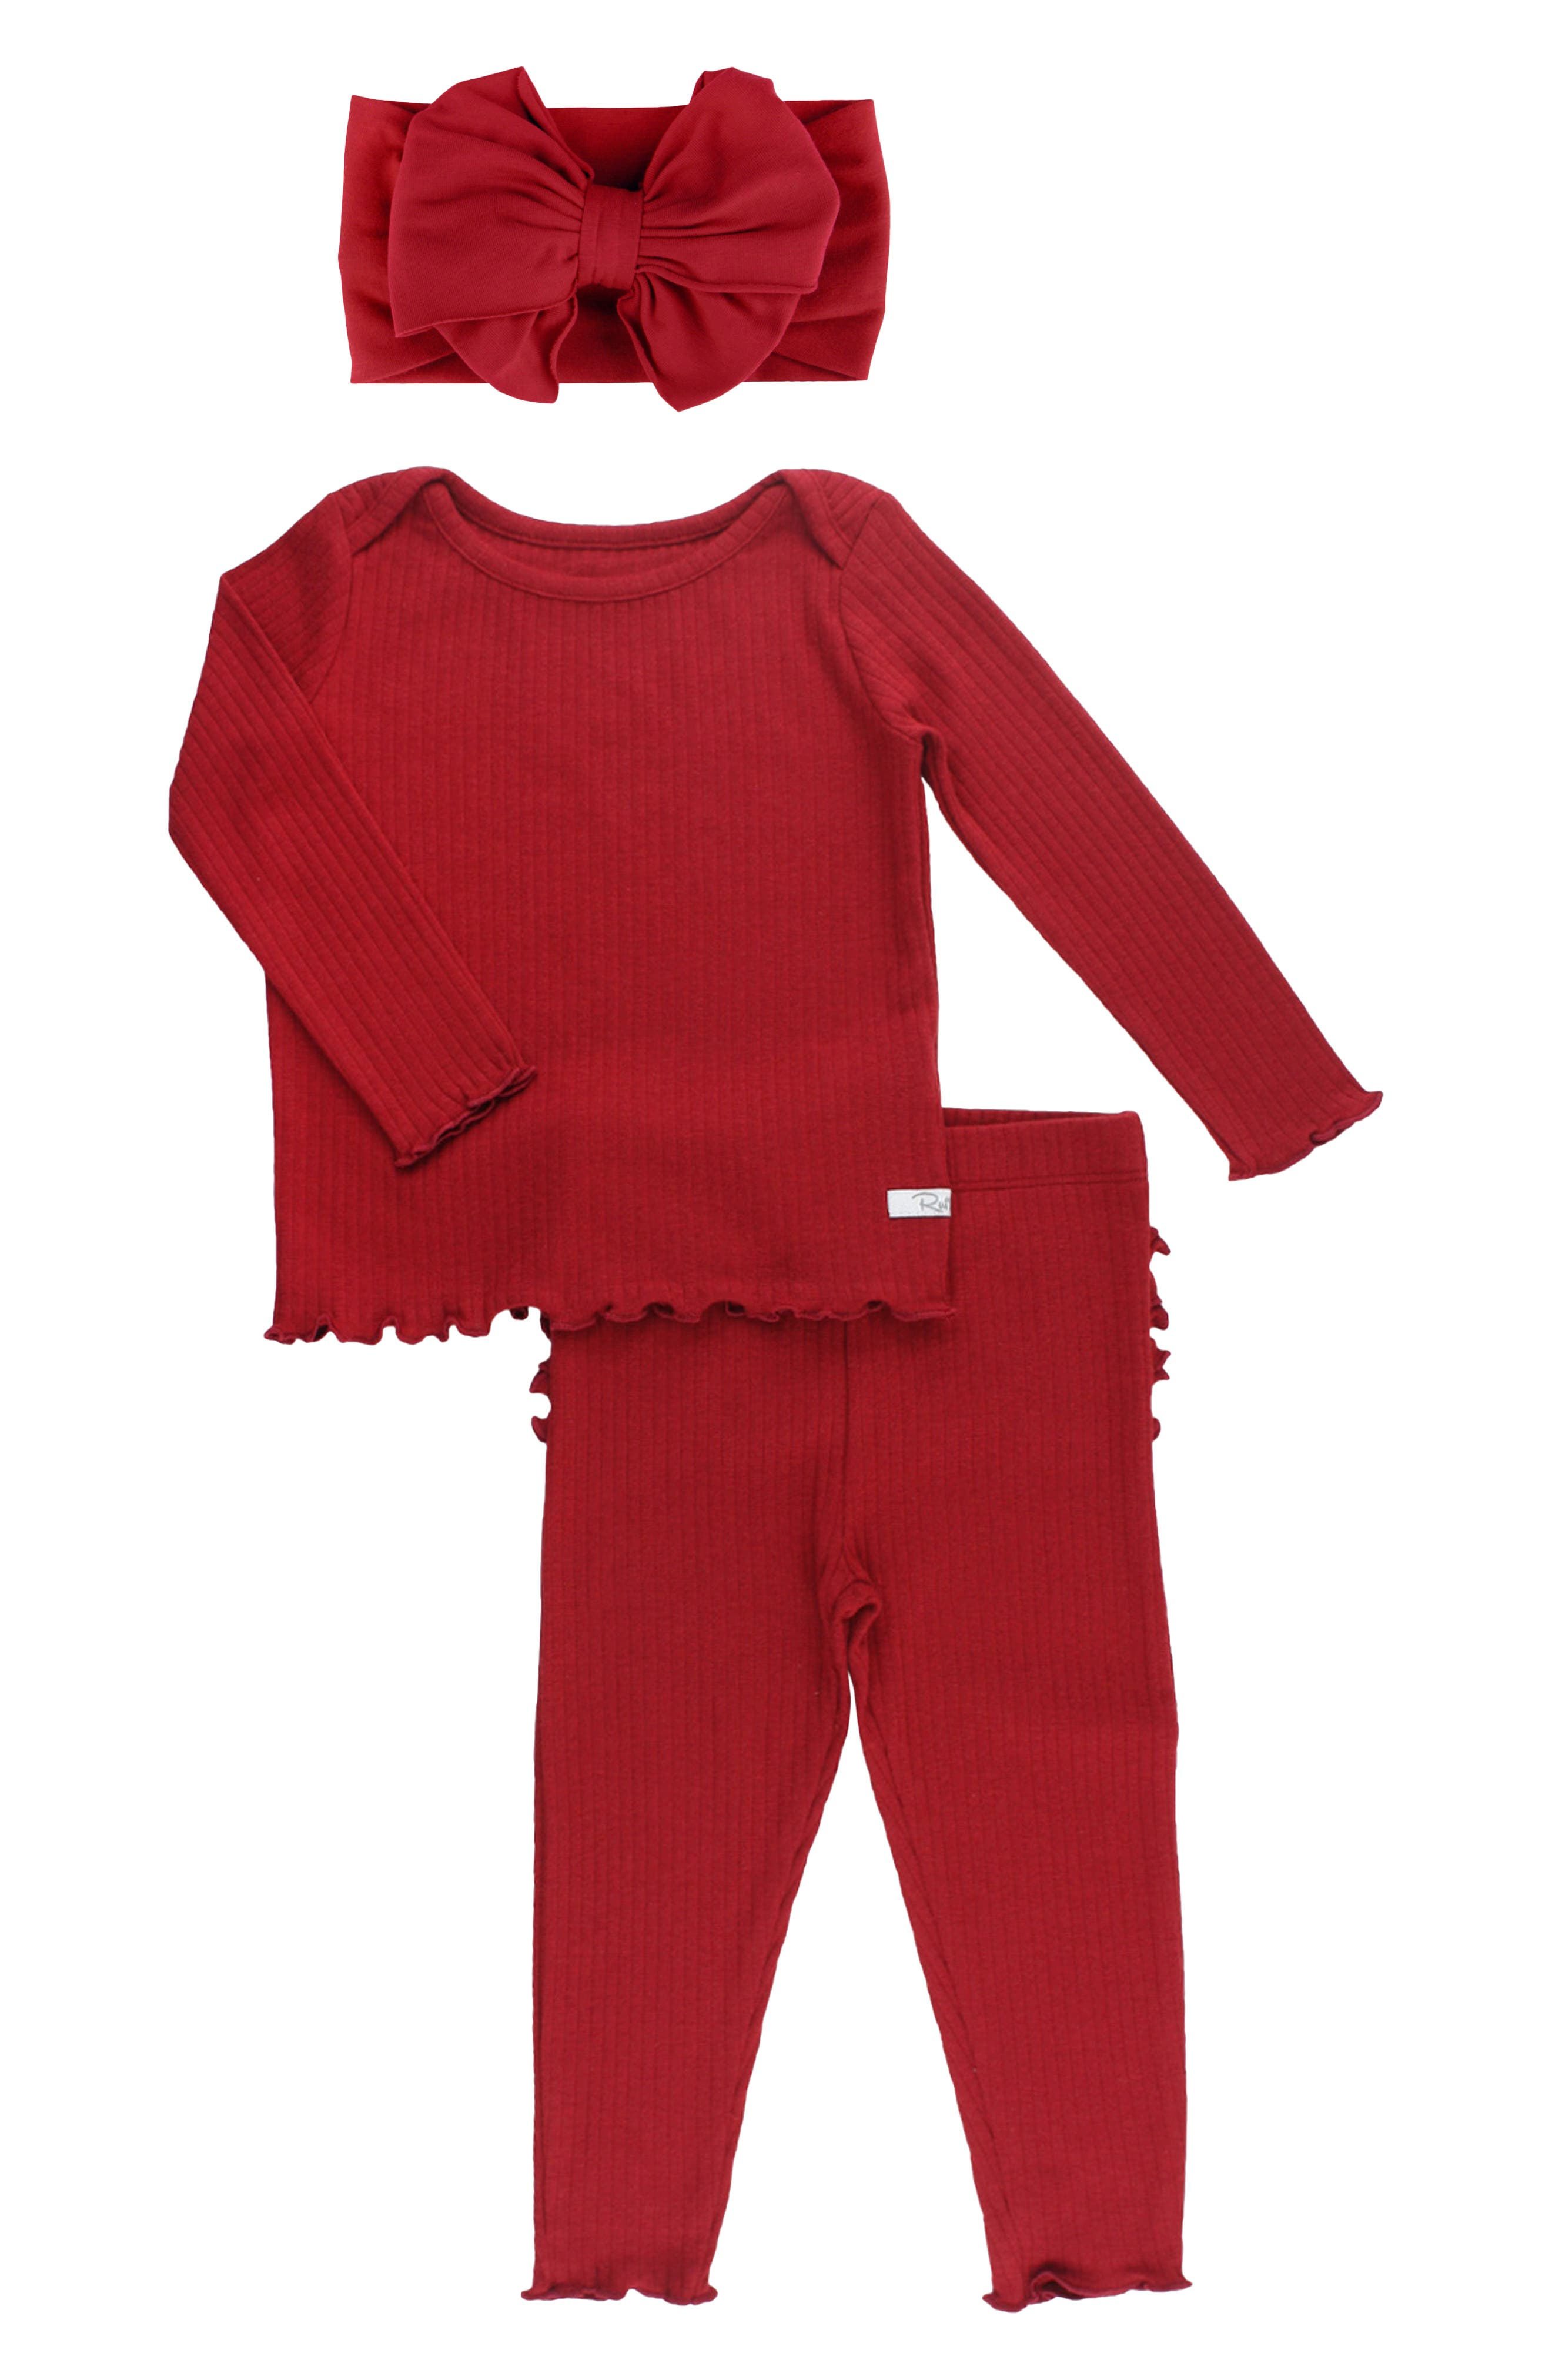 Send your little one sweetly off to sleep with these snug and beautifully hued two-piece ribbed pajamas finished with a coordinating head wrap. Lettuce edges and signature ruffles across the derriere overload these jammies with charm. Style Name: Rufflebutts Cranberry Fitted Two-Piece Pajamas & Head Wrap Set (Toddler, Little Girl & Big Girl). Style Number: 6136049. Available in stores.